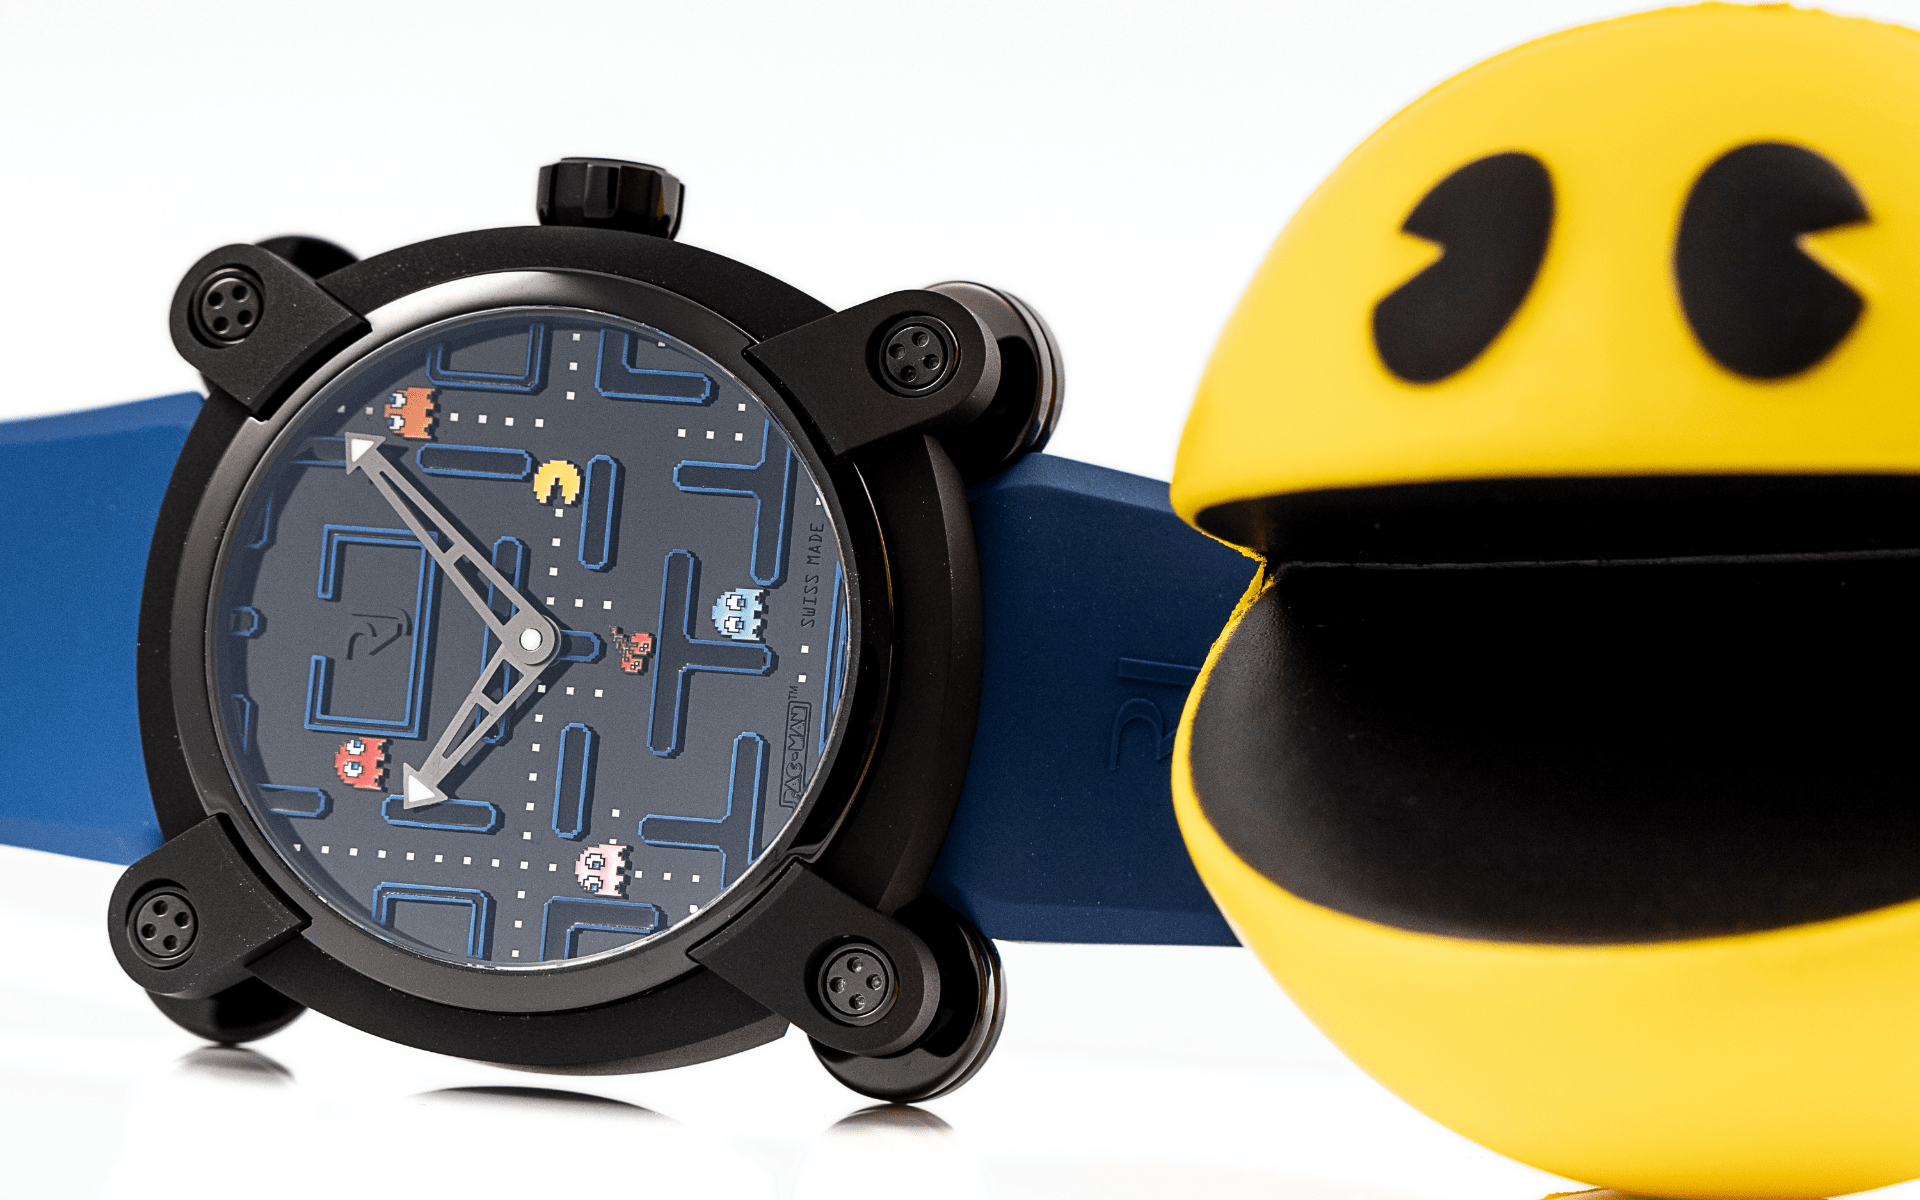 Romain Jerome Ups Its Wrist Game With The Third Pac-Man Watch